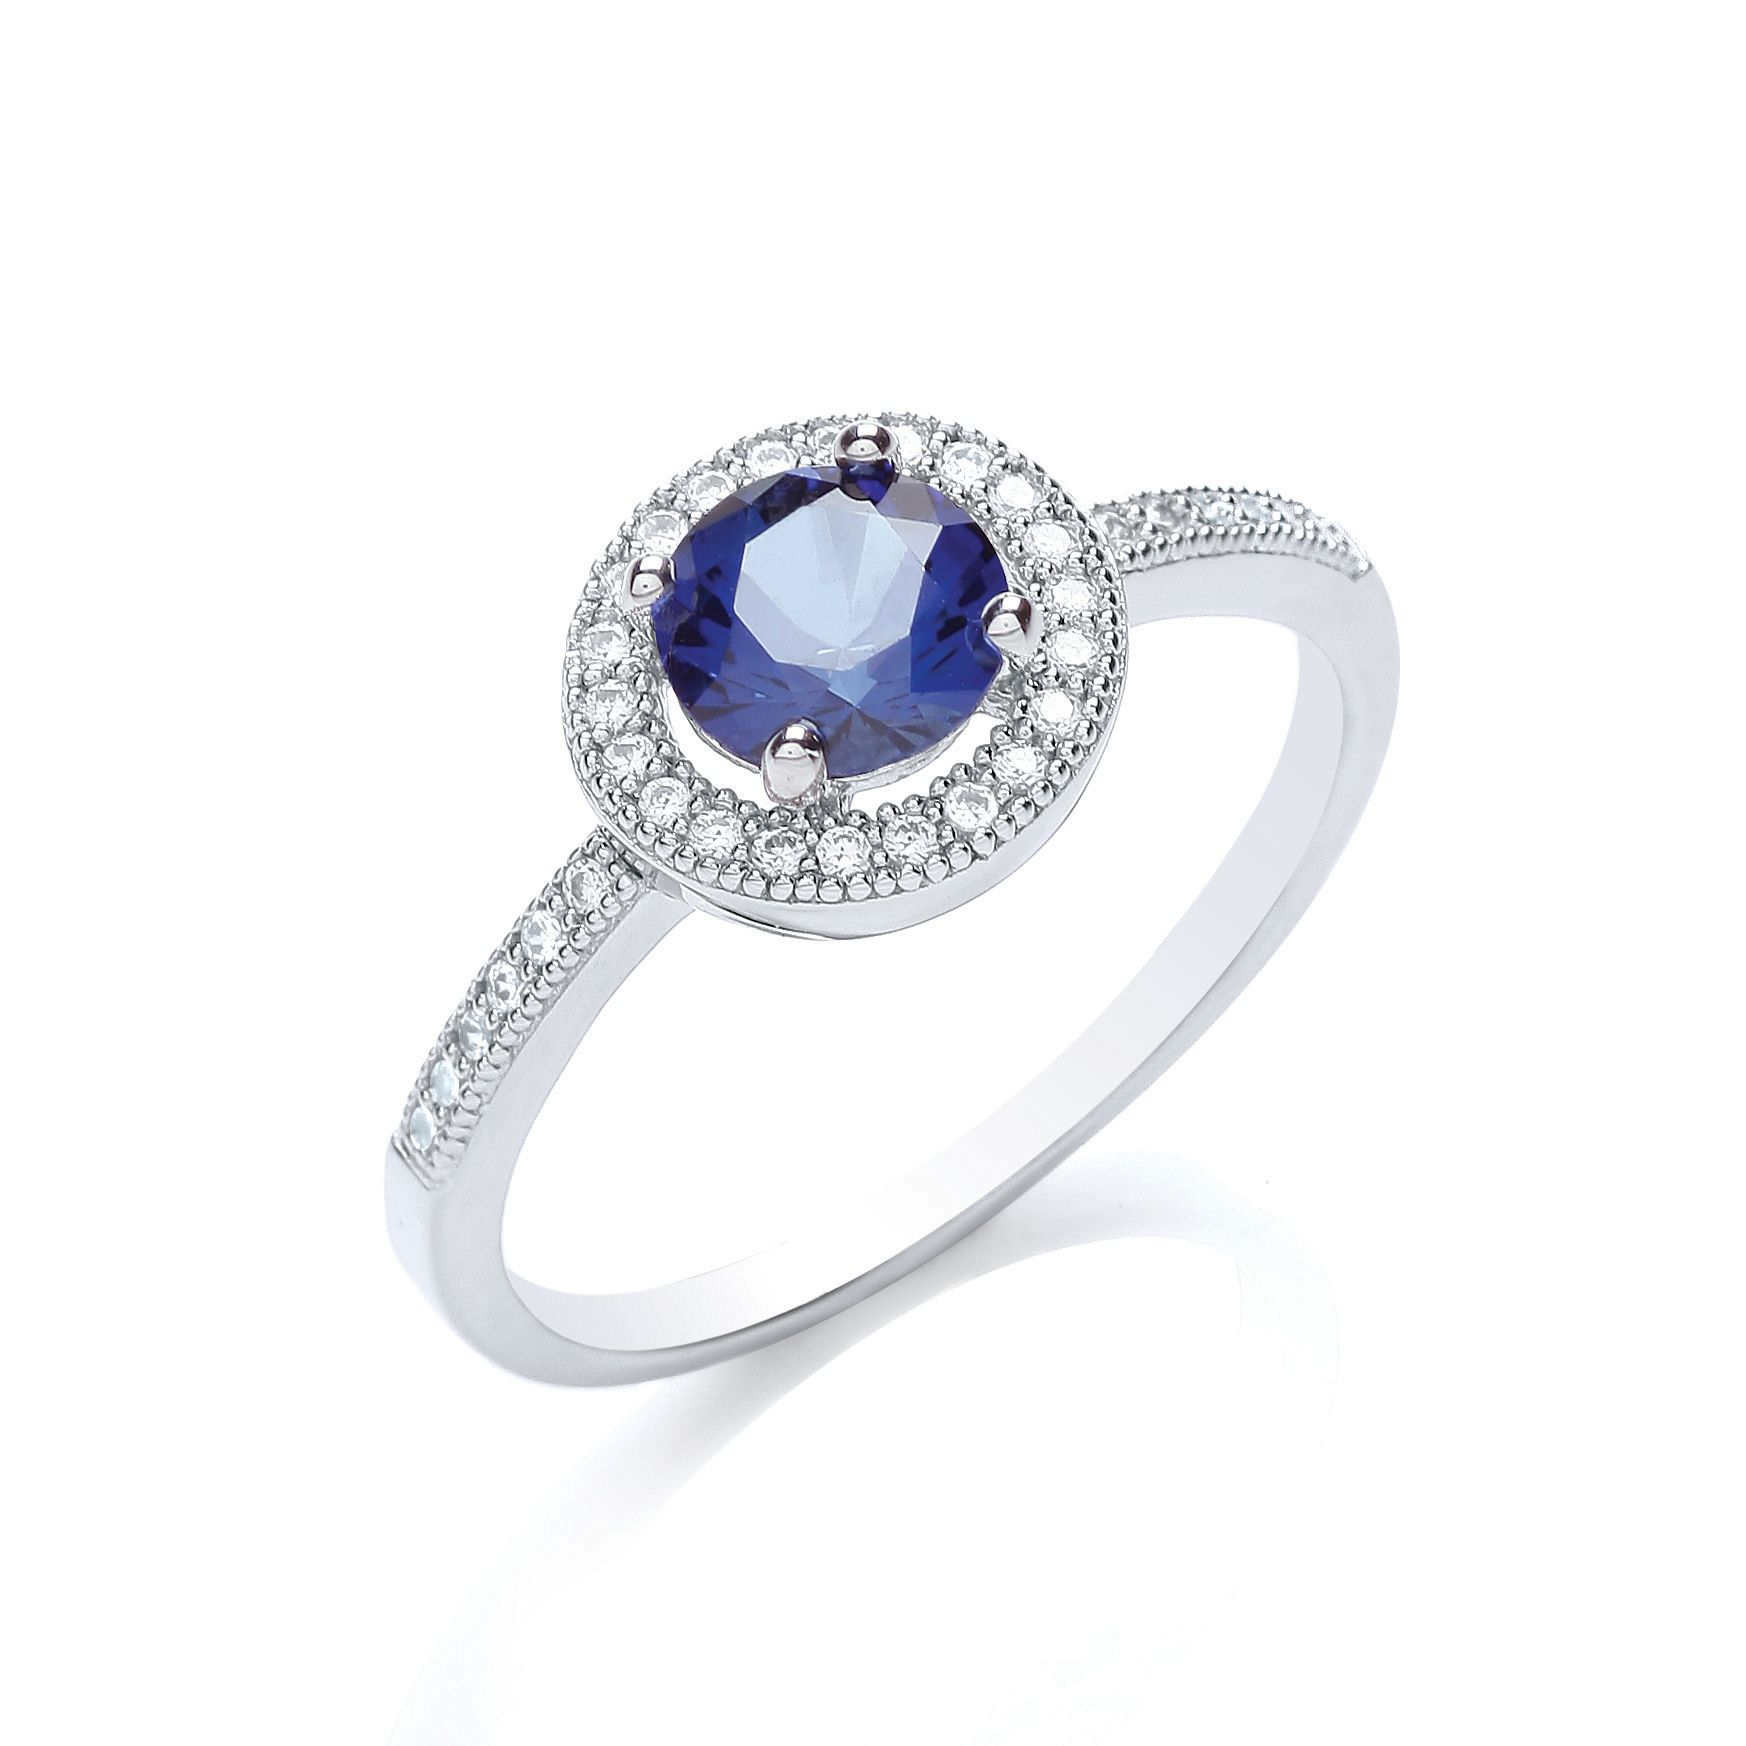 bouton delicate round stone ring